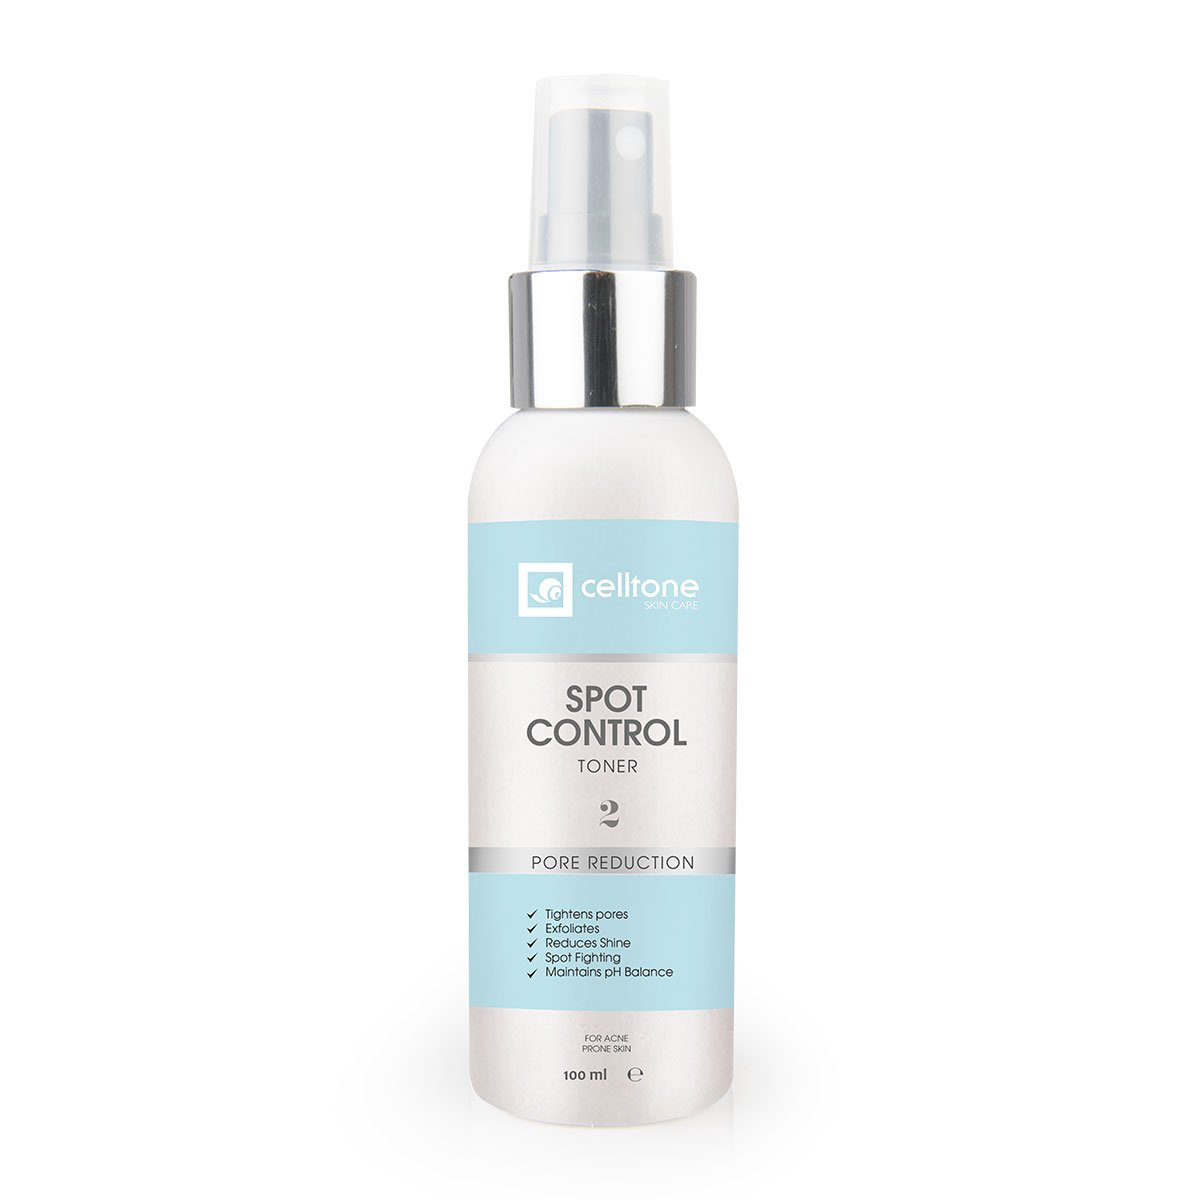 CELLTONE SPOT CONTROL TONER, 100ML 12-Pack